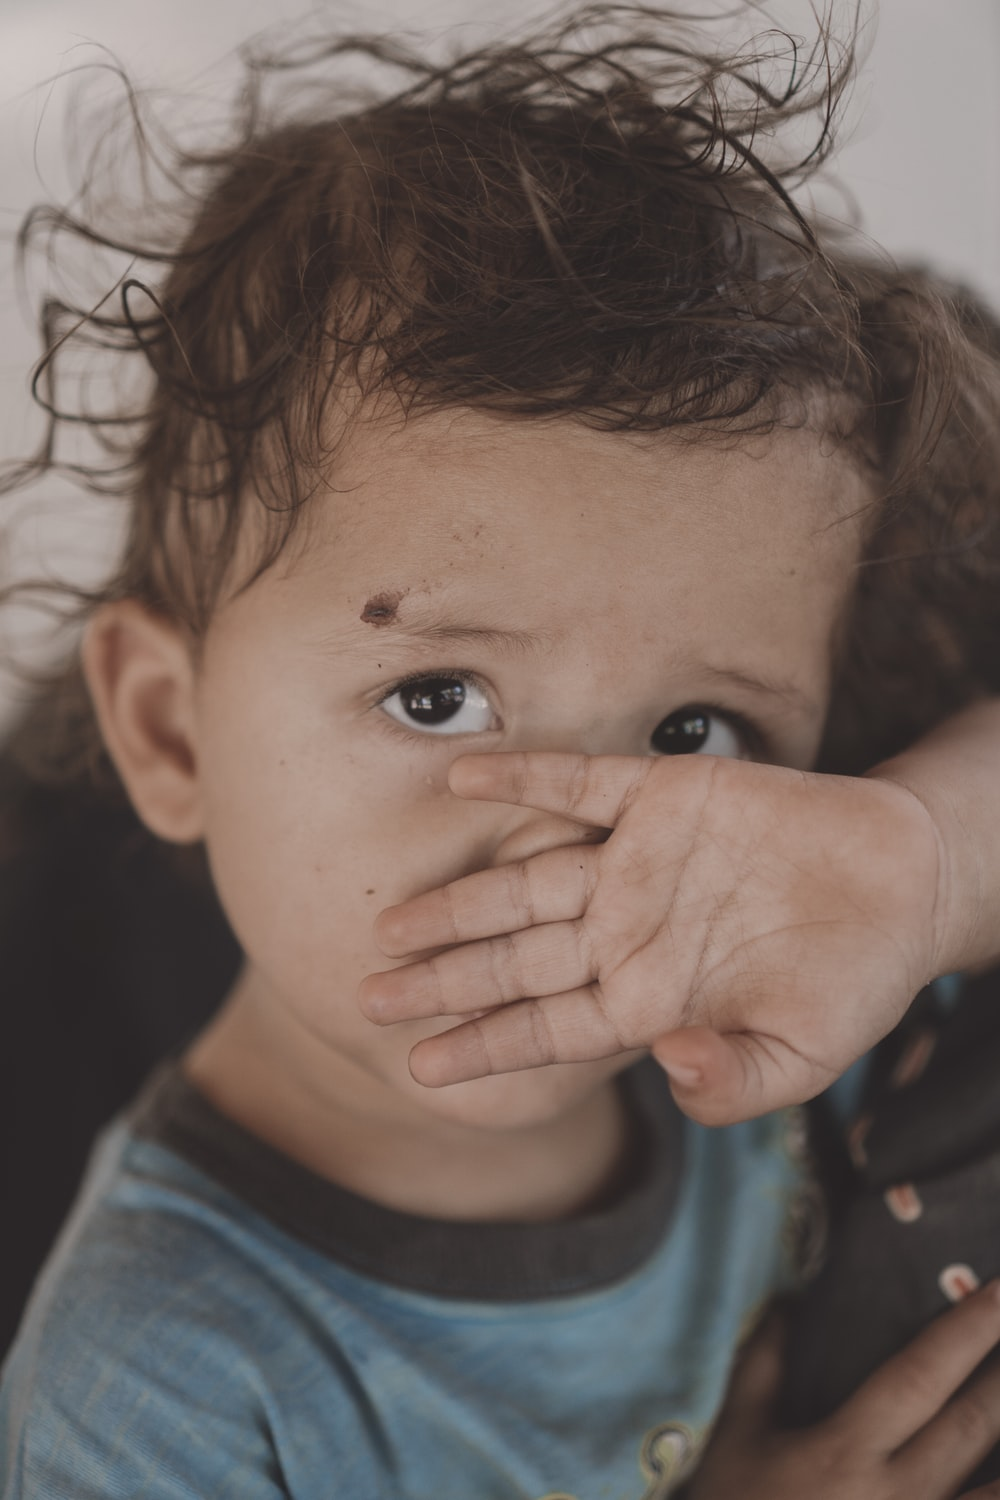 toddler covering their nose and mouth with their hand